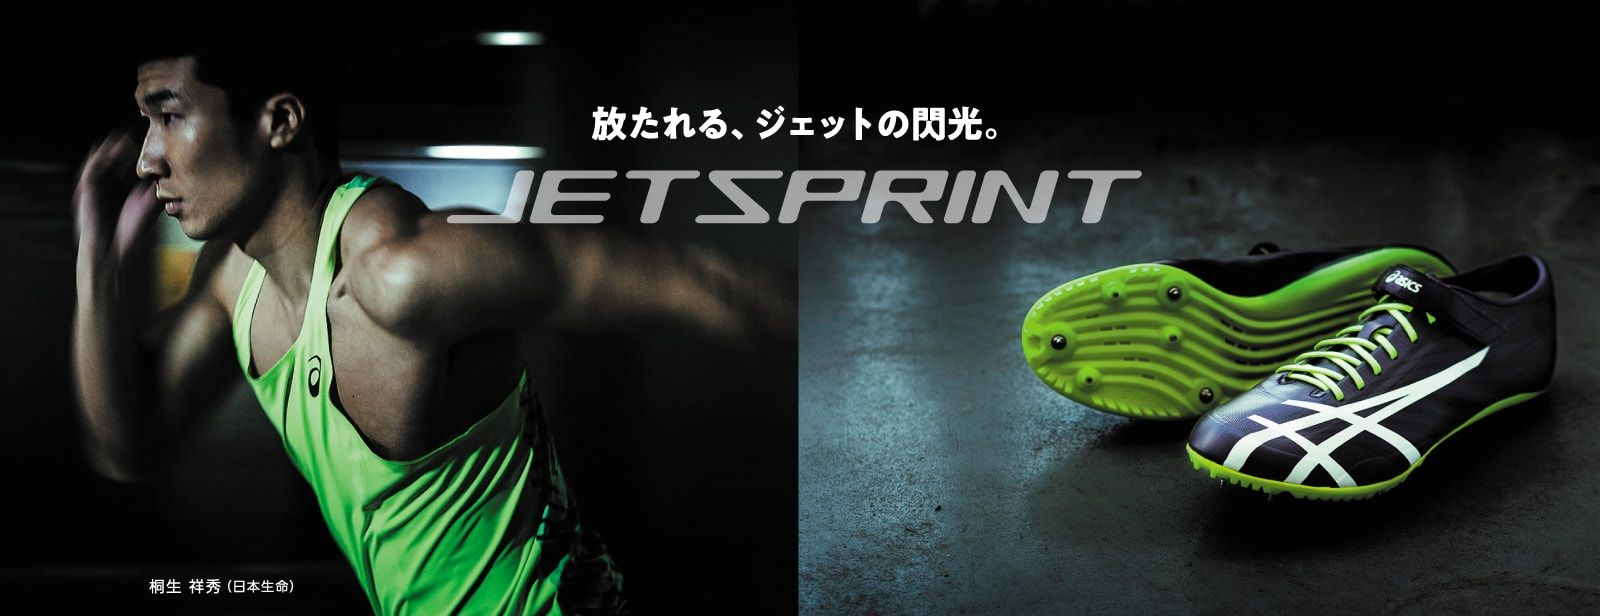 jetsprint hero pc 1600x616